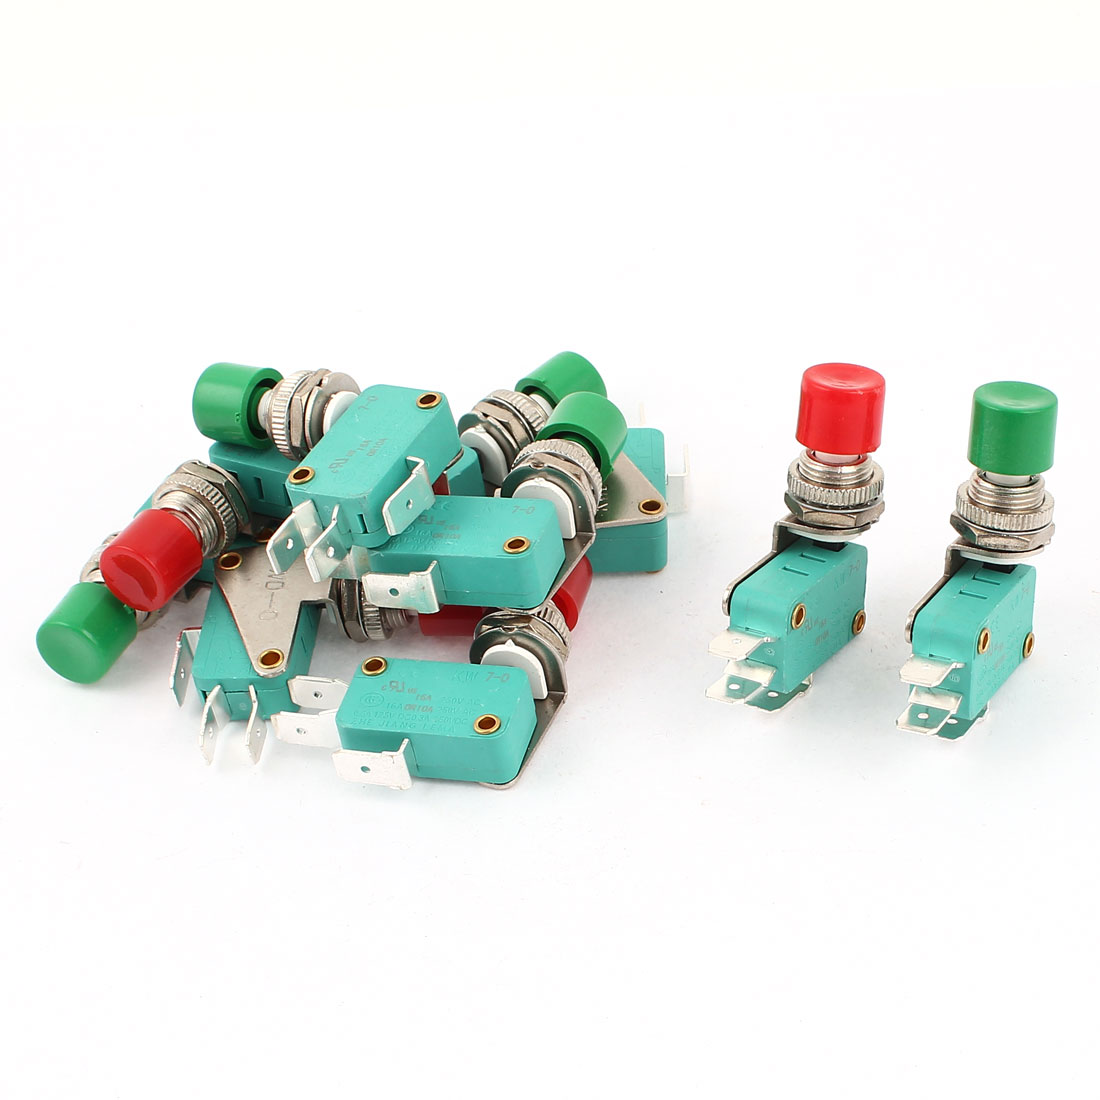 10 Pcs Green Red Push Button Momentary SPDT Micro Switch AC 250V/125V